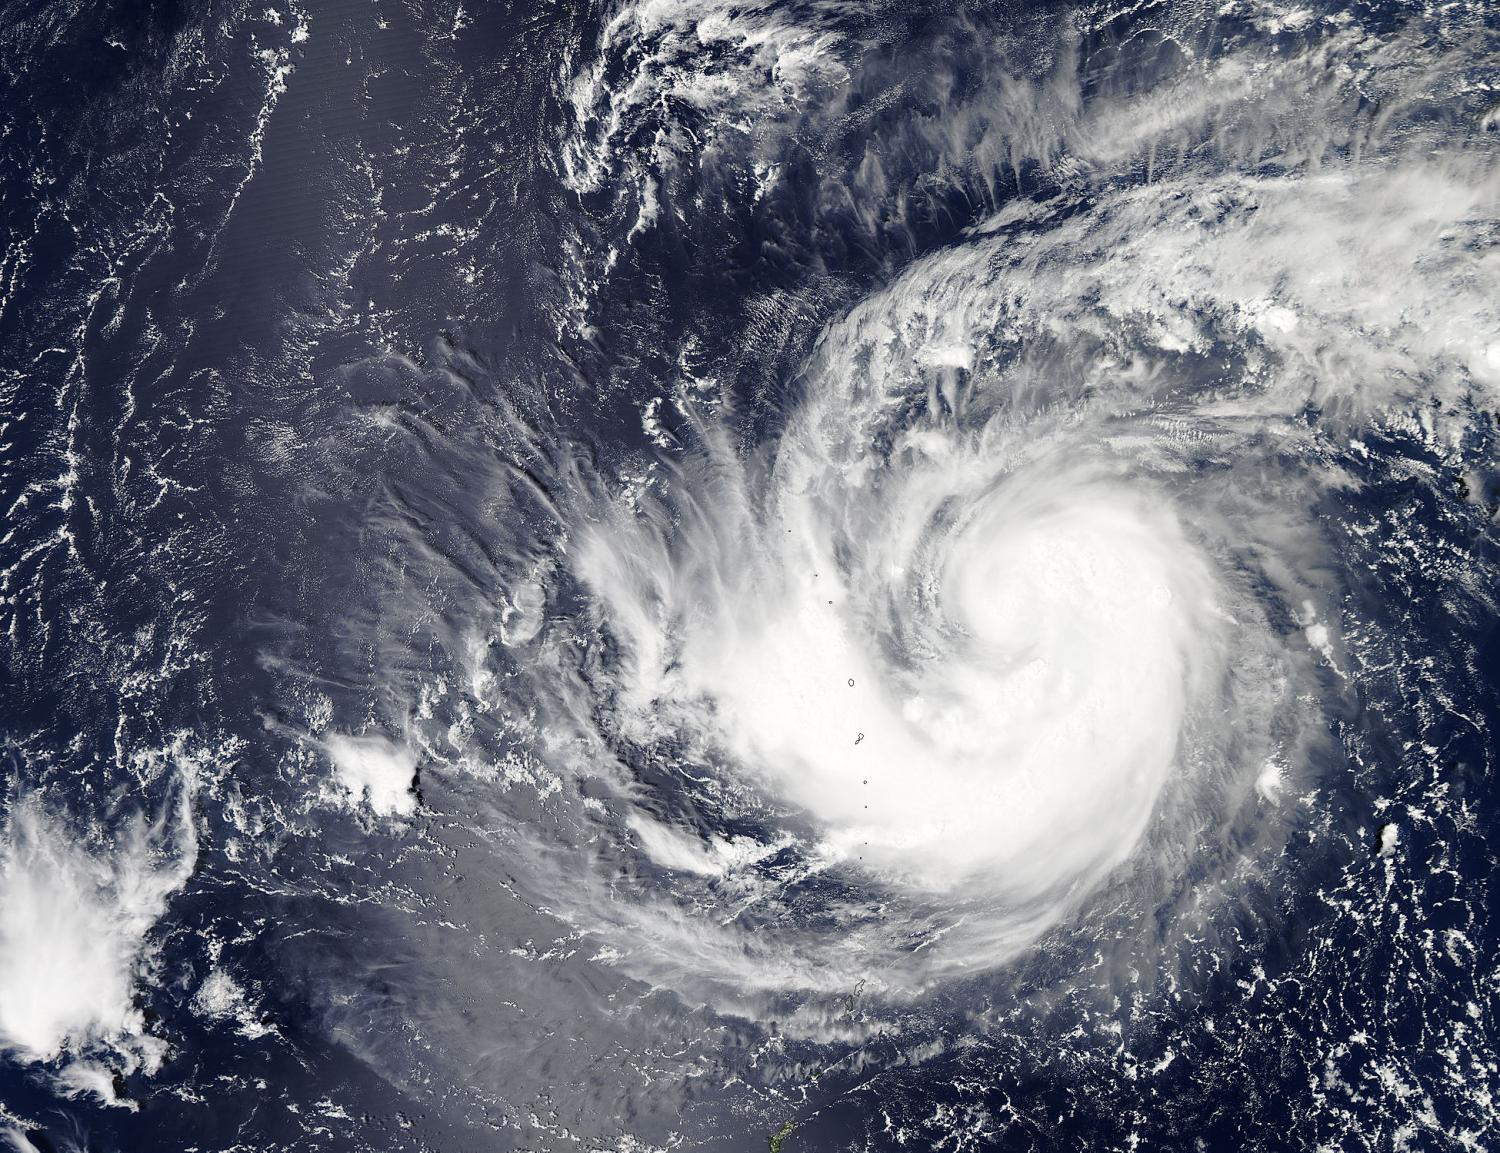 ... Tropical Storm Krovanh in the western Pacific Ocean. Credit: NASA